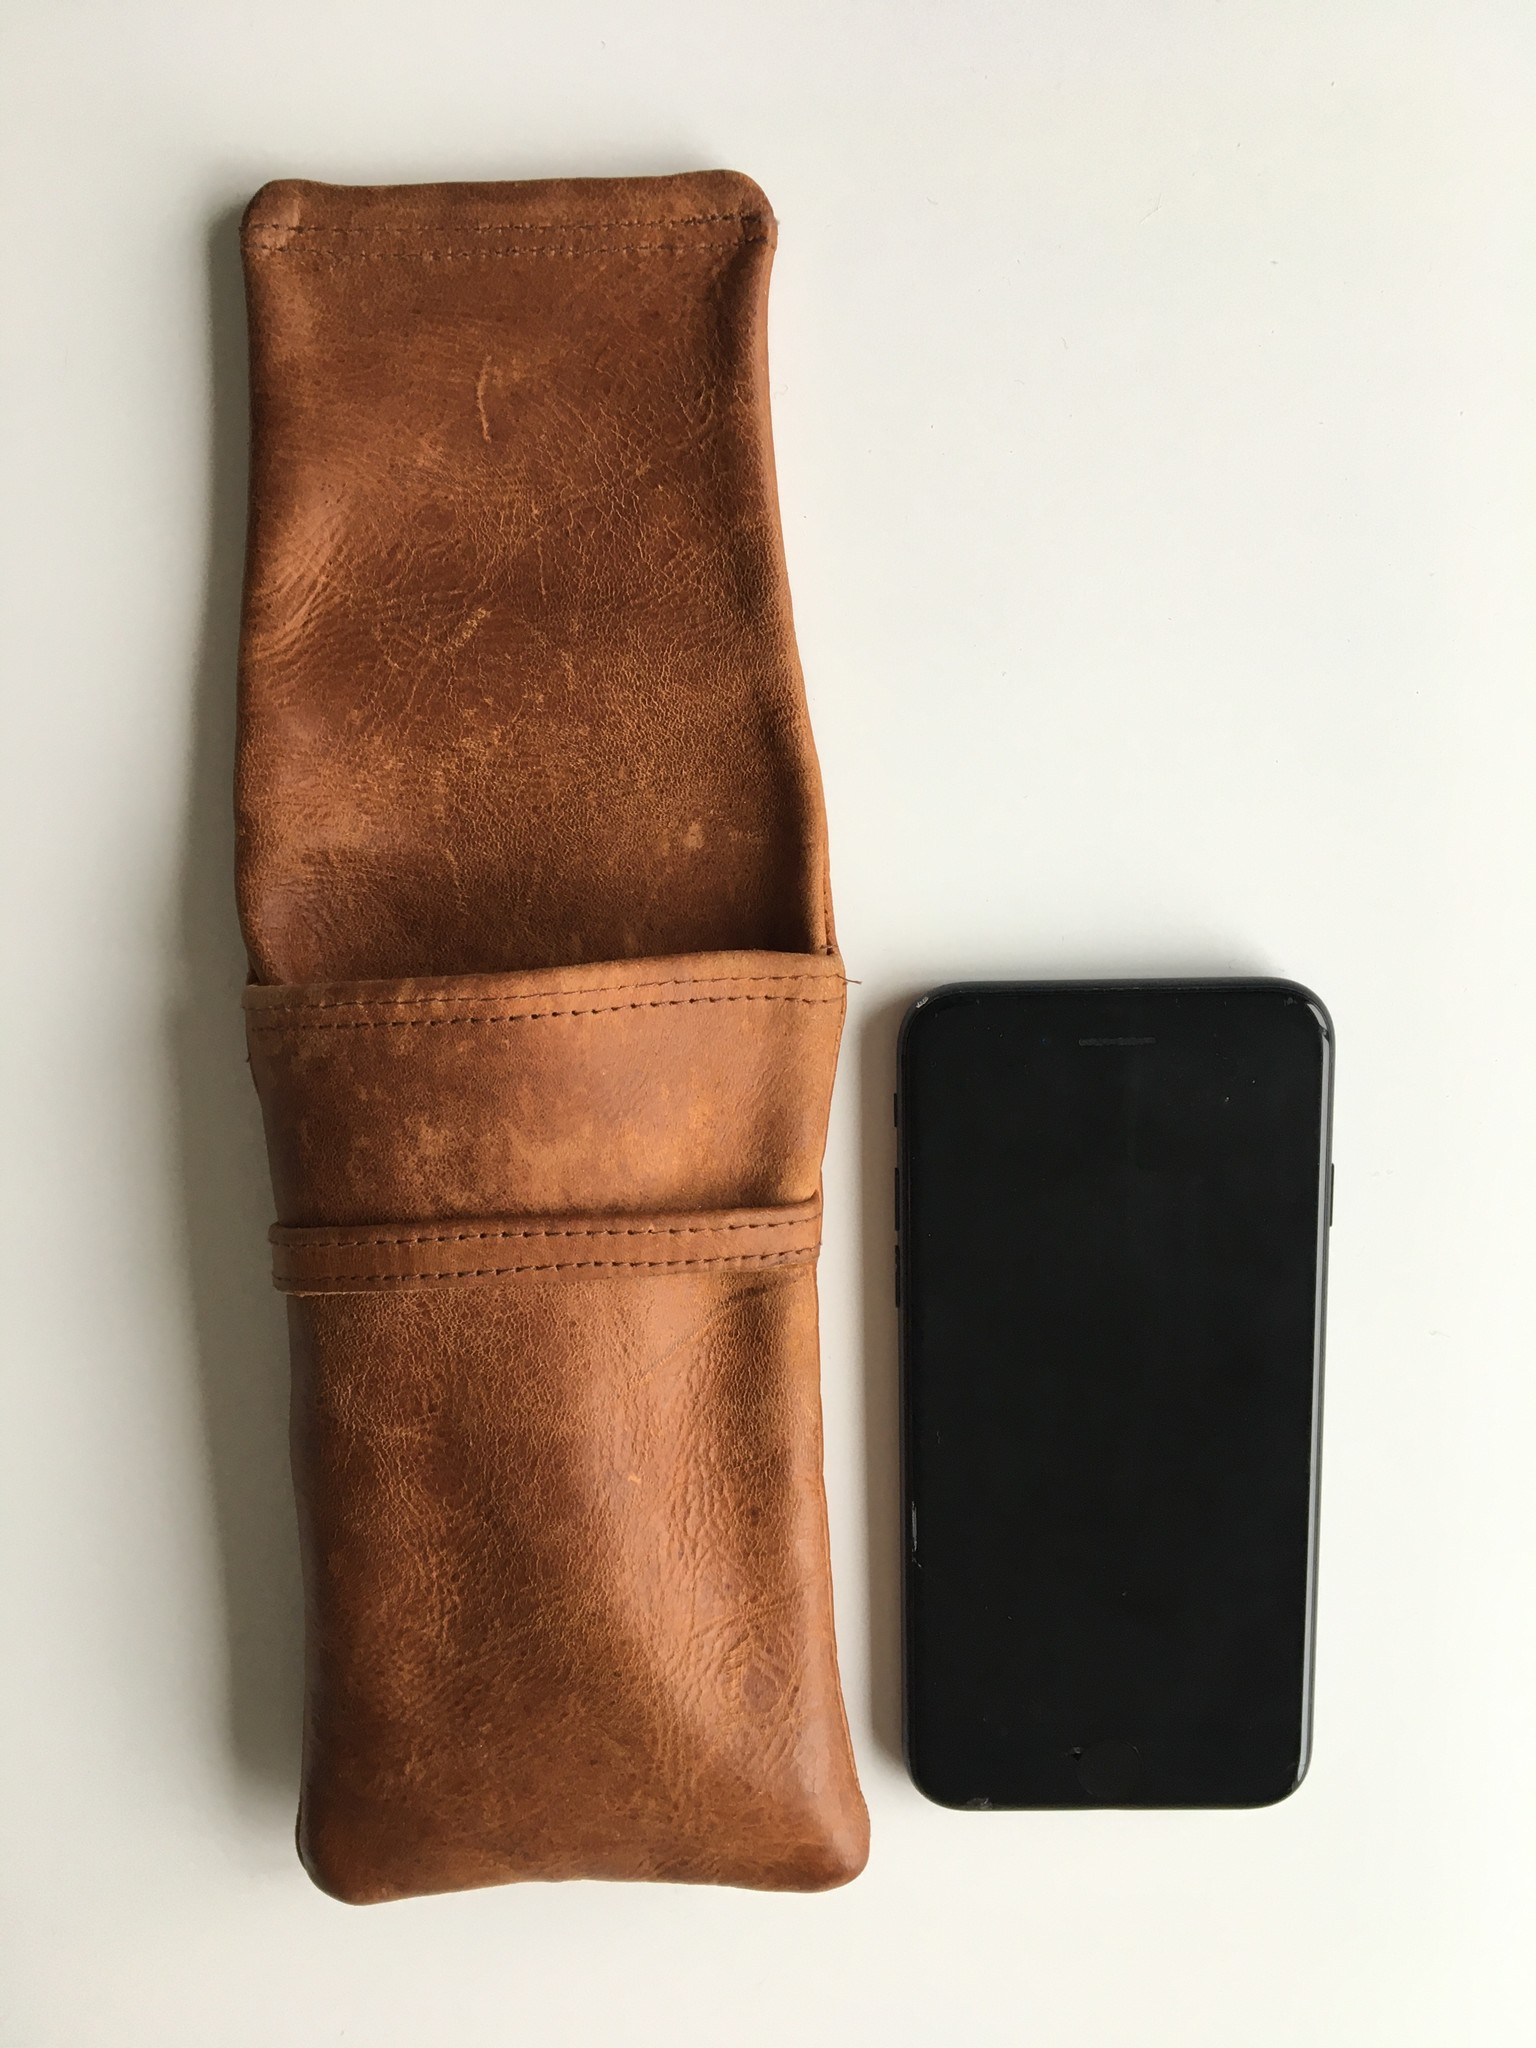 Fine reindeer leather case cognac-coloured for glasses or mobile phone